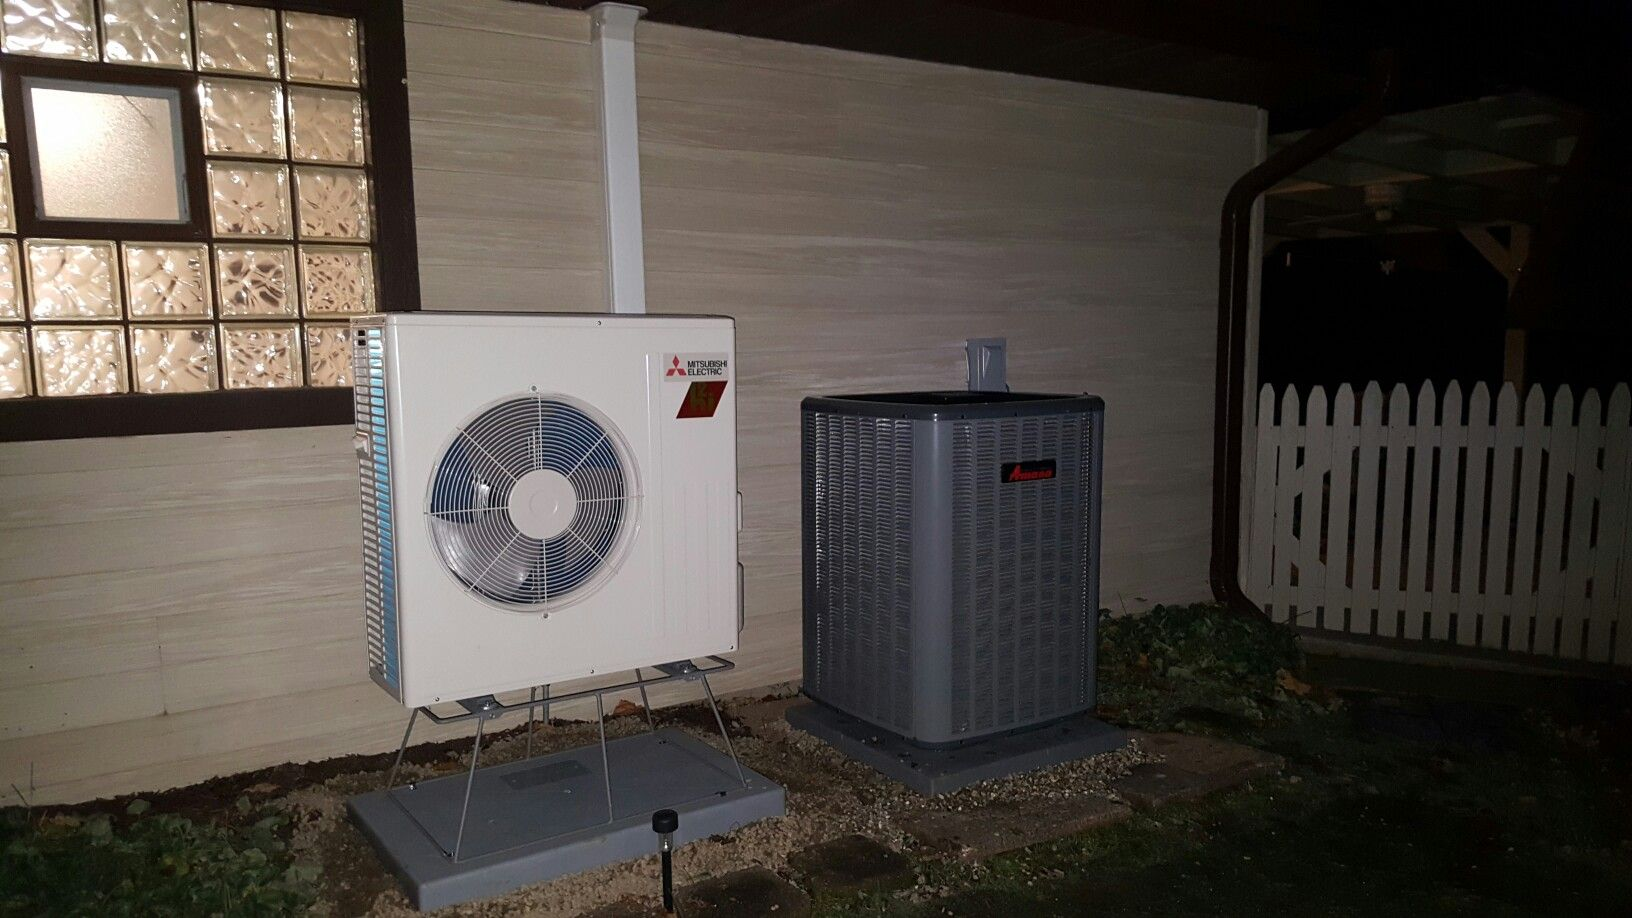 High Efficiency Pairing For Zoned Comfort In Schaumburg Il Heating And Air Conditioning Water Heater Repair Hvac Installation